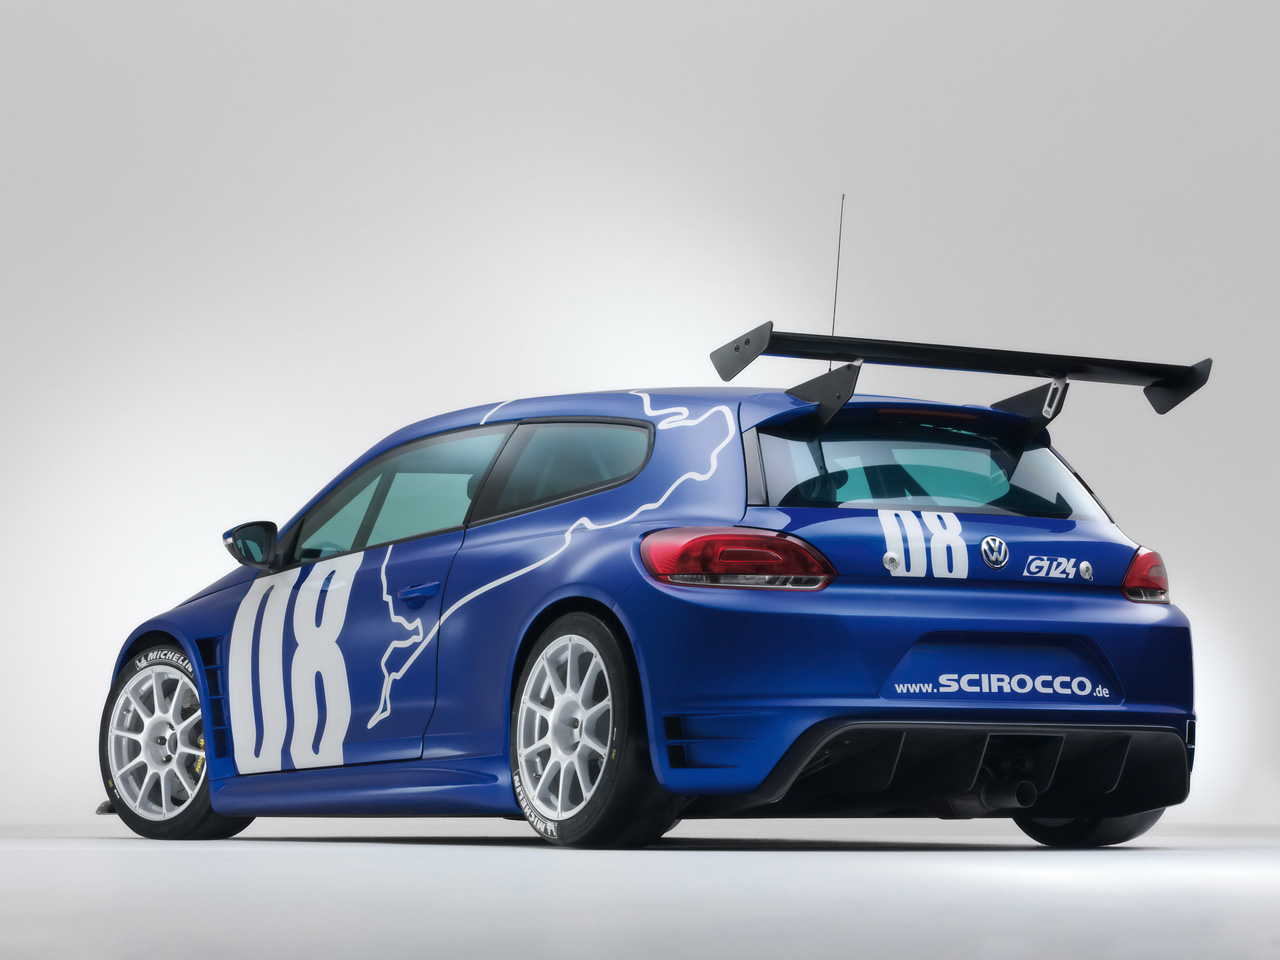 Cars Volkswagen Scirocco 3 2011 34117 together with 2009 Abt Volkswagen Scirocco Front And Side 1600x1200 also 8125196236 also Photos Volkswagen Scirocco 1974 77 80845 additionally R8 Rocco I202987224. on volkswagen scirocco